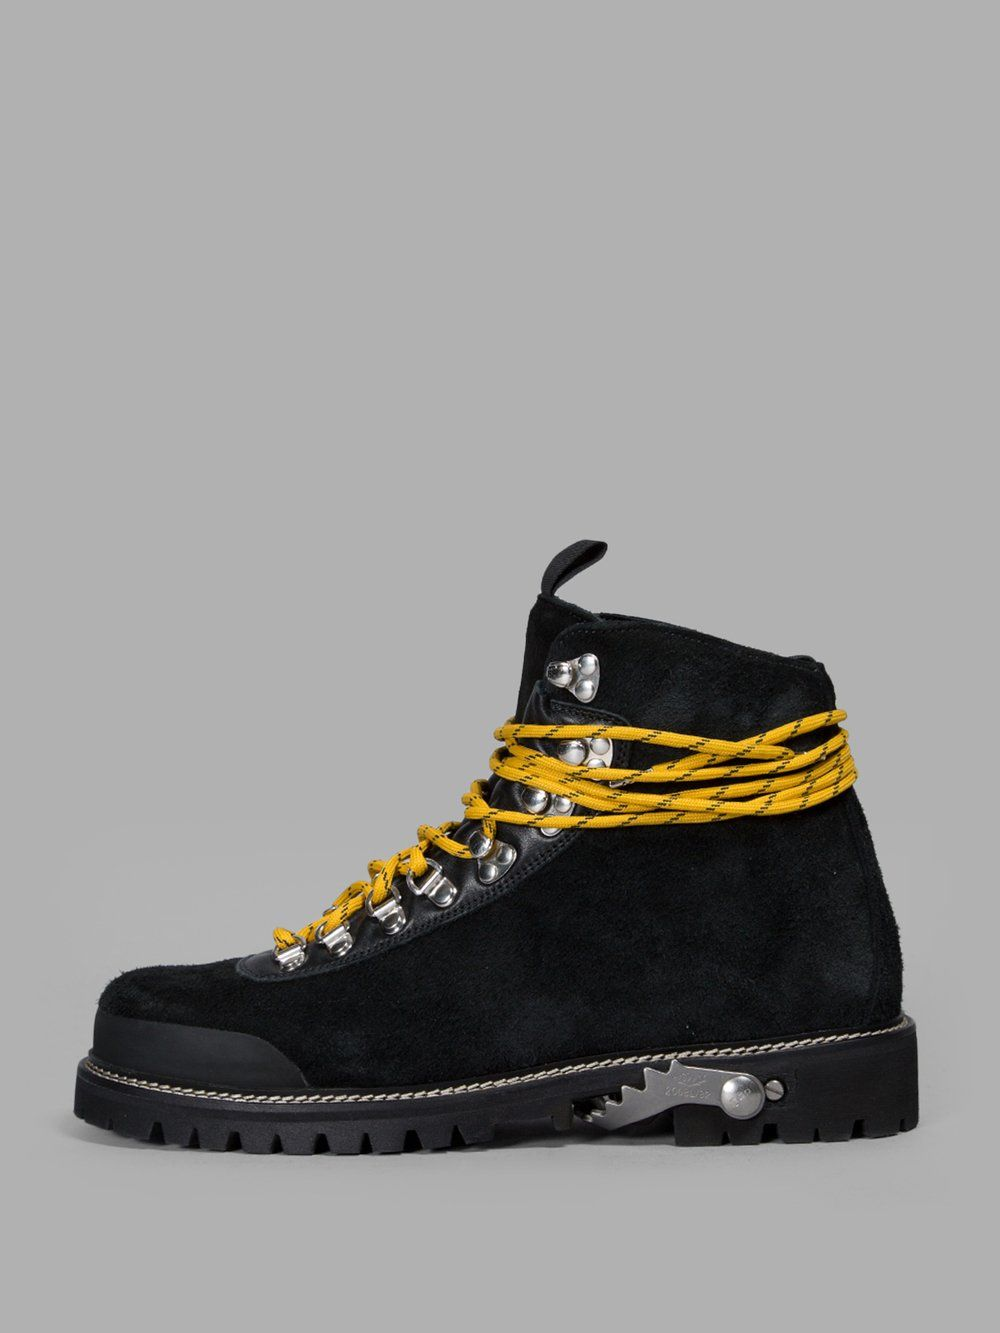 5a5a179272cd OFF WHITE C O VIRGIL ABLOH BLACK HIKING BOOTS